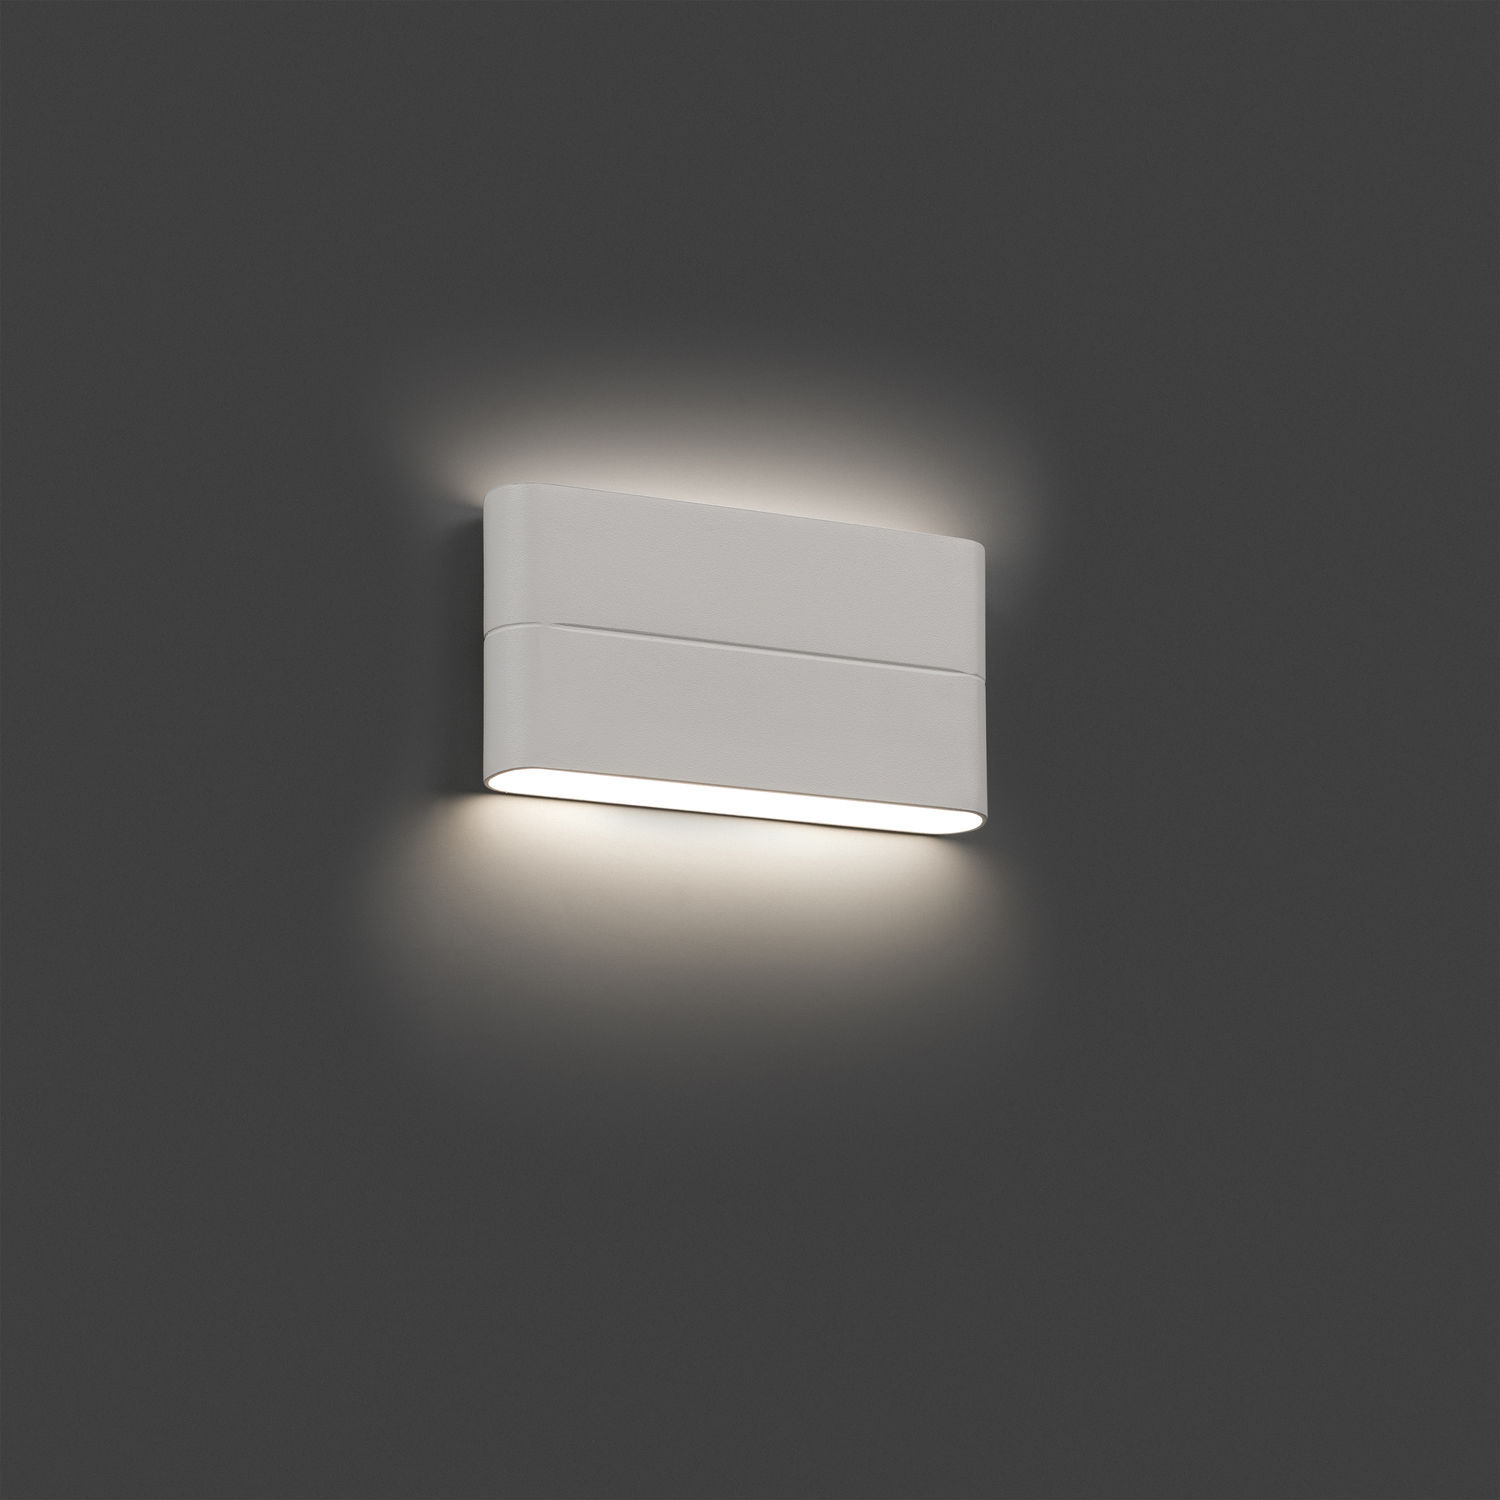 Applique murale d 39 ext rieur aday 2 led ip54 blanc l17 for Applique murale exterieur rectangulaire